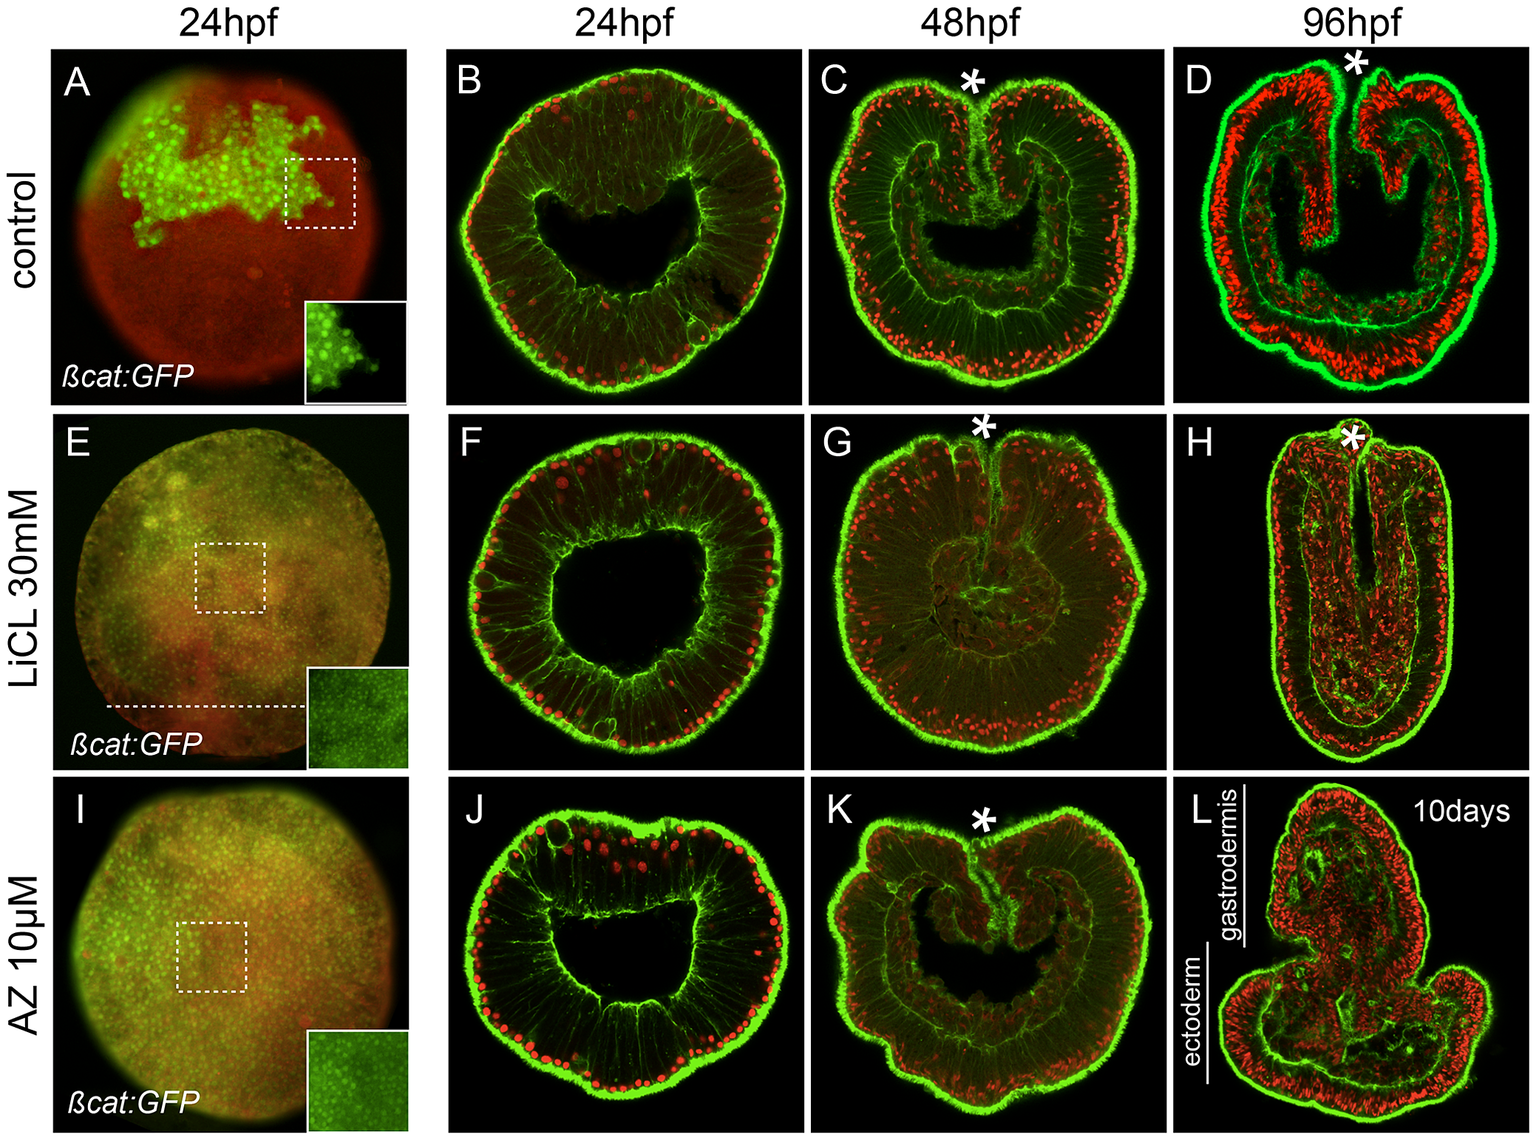 Ectopic activation of canonical Wnt signaling.